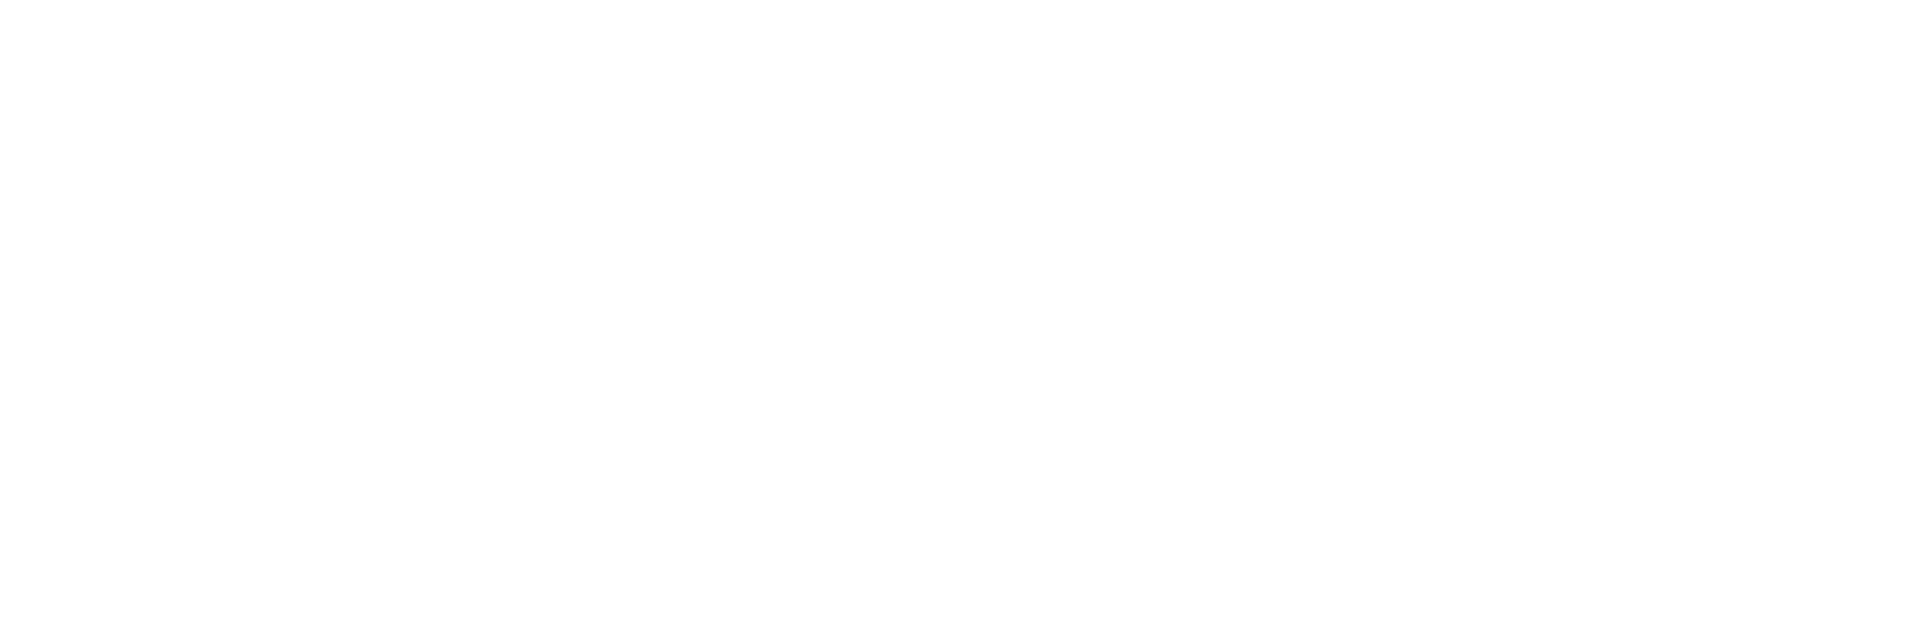 8 pillars pf inbound marketing success